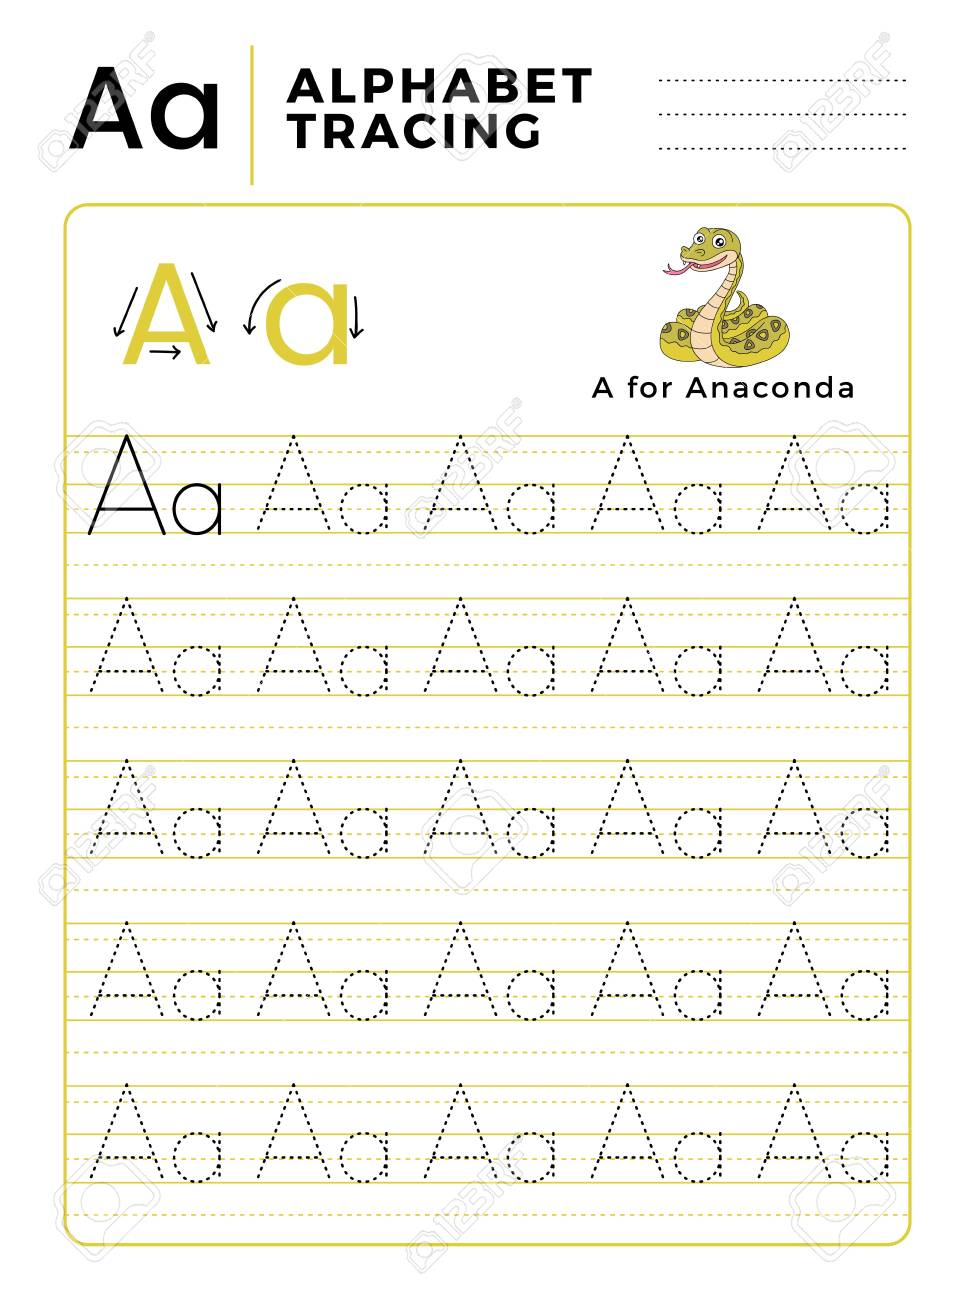 Letter A Alphabet Tracing Book With Example And Funny Anaconda.. for Letter A Alphabet Worksheets